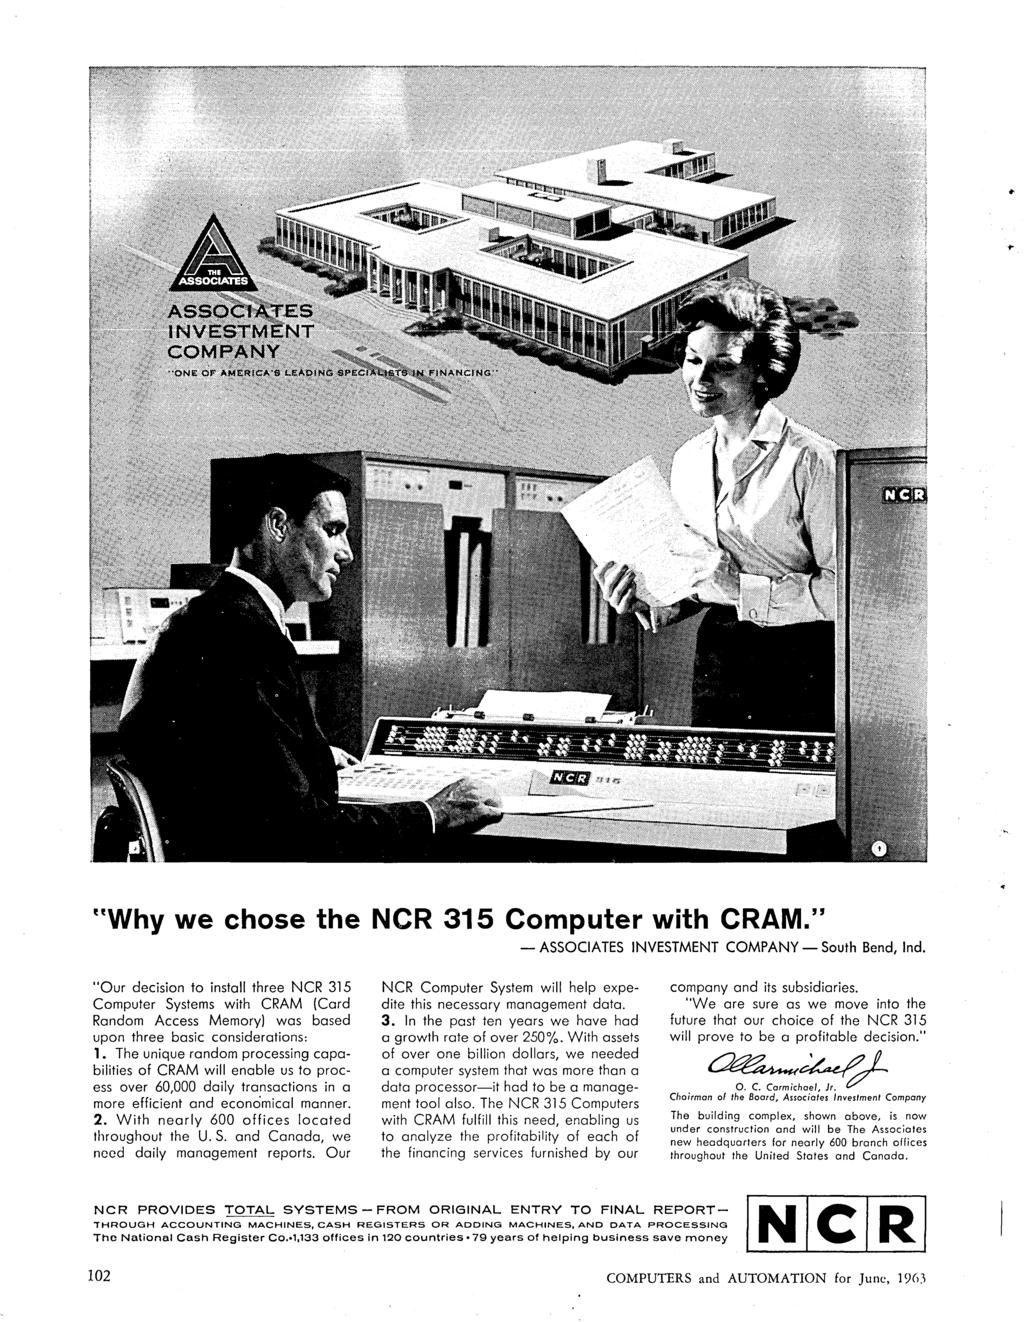 "UWhy we chose the NCR 315 Computer with CRAM."" - ASSOCIATES INVESTMENT COMPANY - South Bend, Ind."